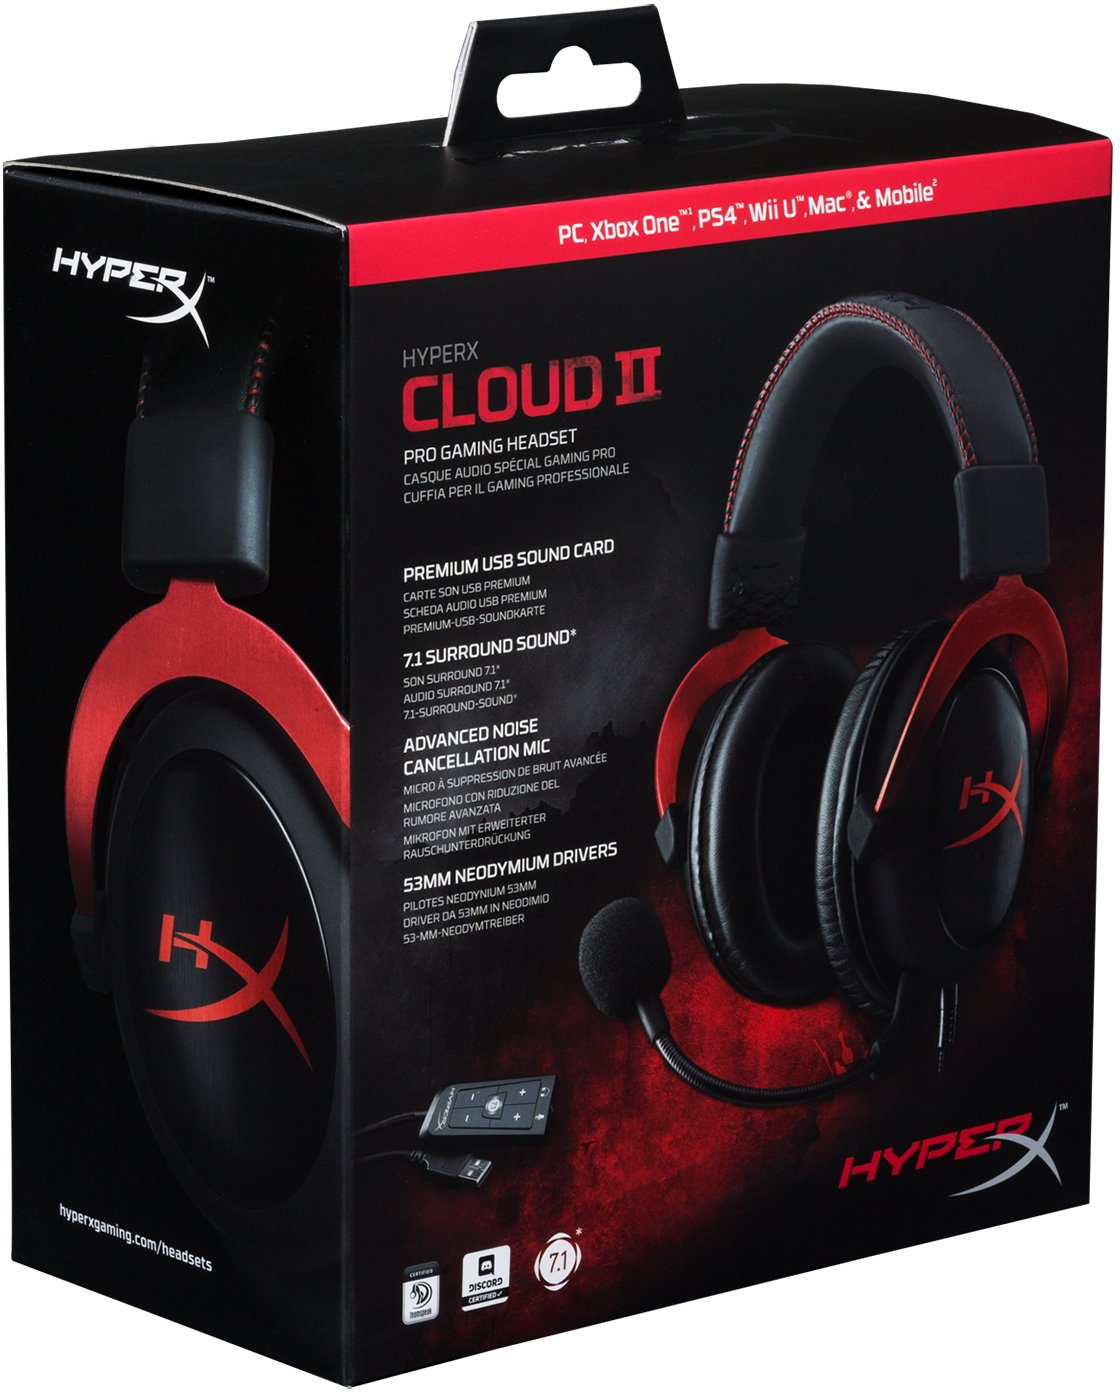 Kind of lining can you expect on the kingston hyperx cloud ii headset - Amazon Com Hyperx Cloud Ii Gaming Headset For Pc Ps4 Xbox One Nintendo Switch Red Khx Hscp Rd Computers Accessories